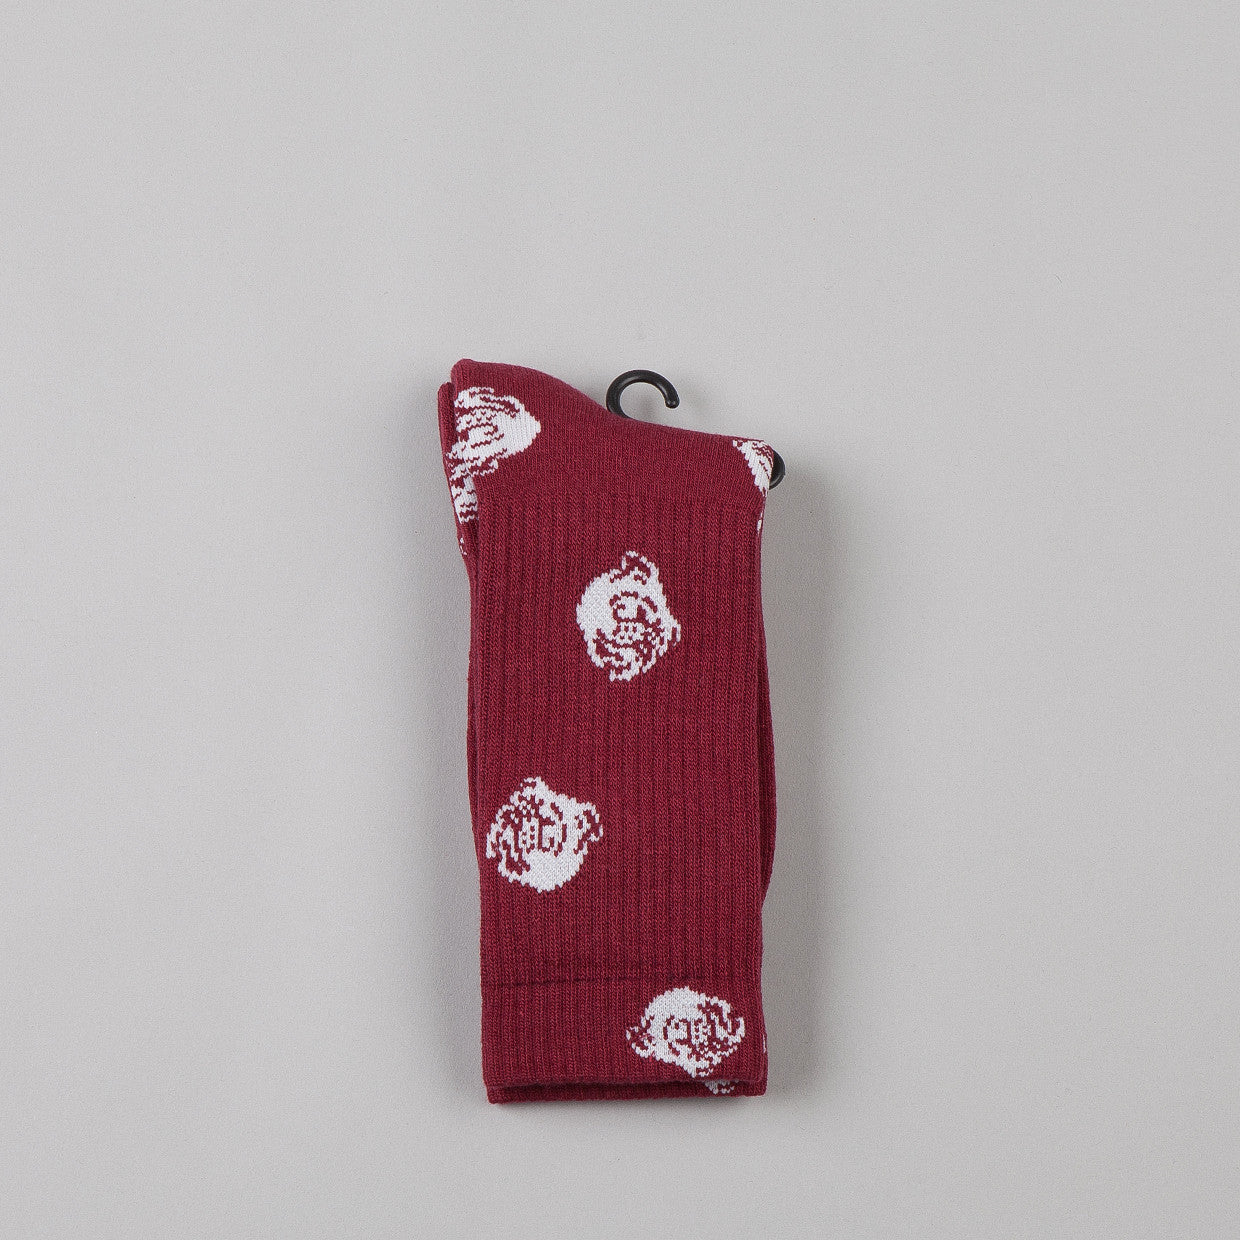 Indcsn Allover Bulldog Socks Maroon